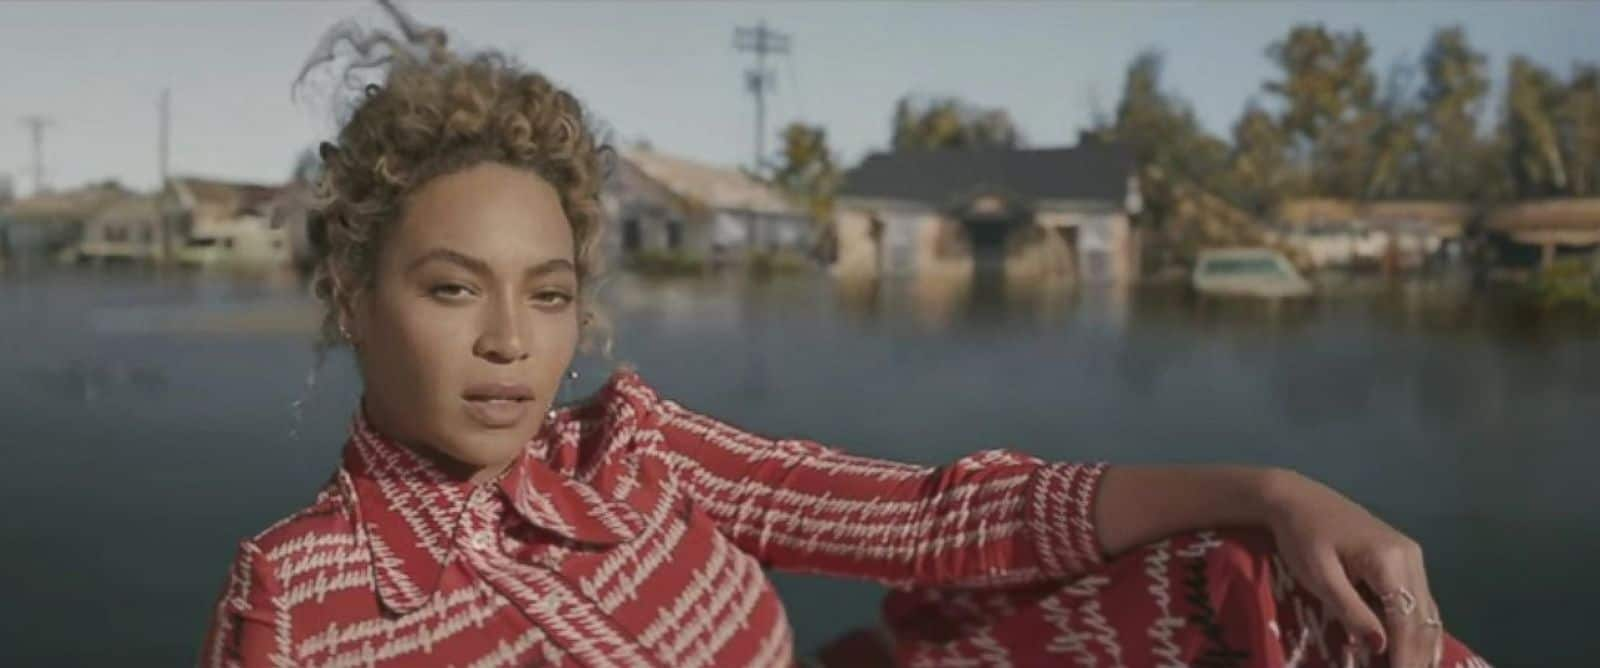 5 Looks To Copy From Beyonce's 'Formation' Video – The ...